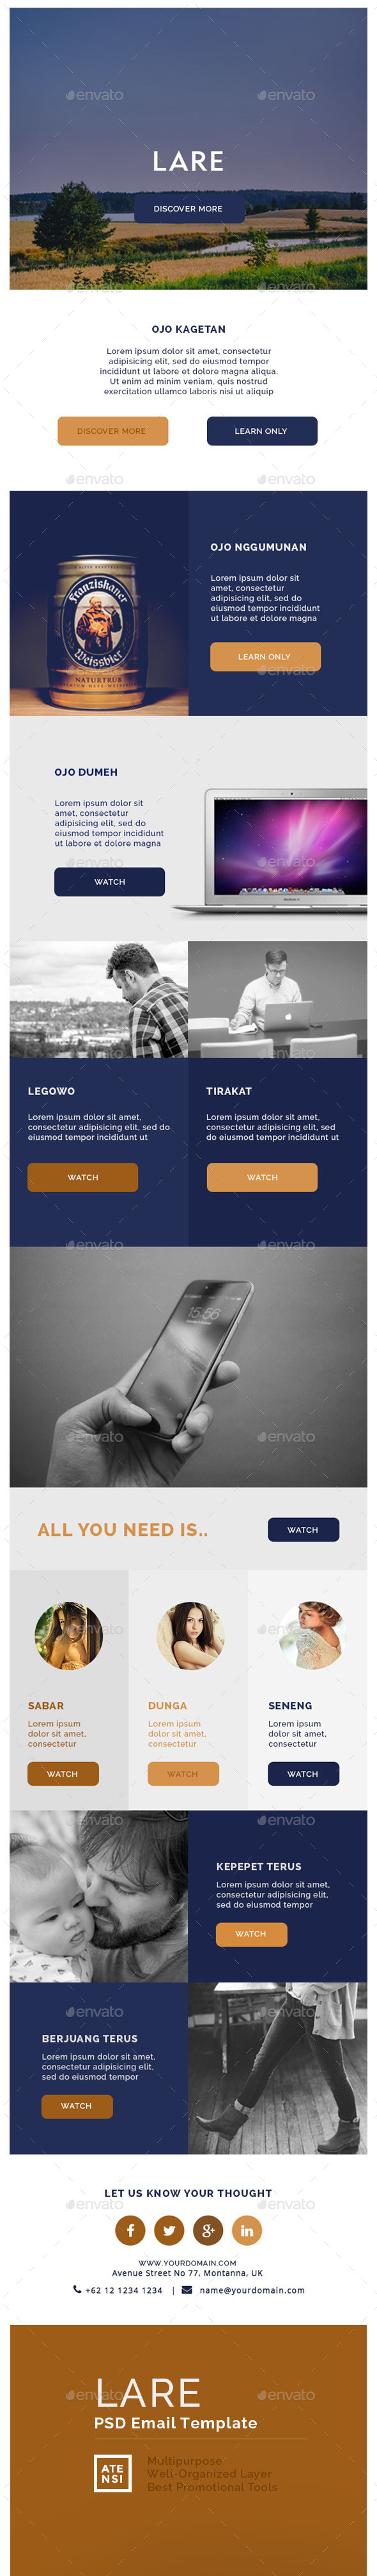 Lare Multipurpose Email Template - E-newsletters Web Elements